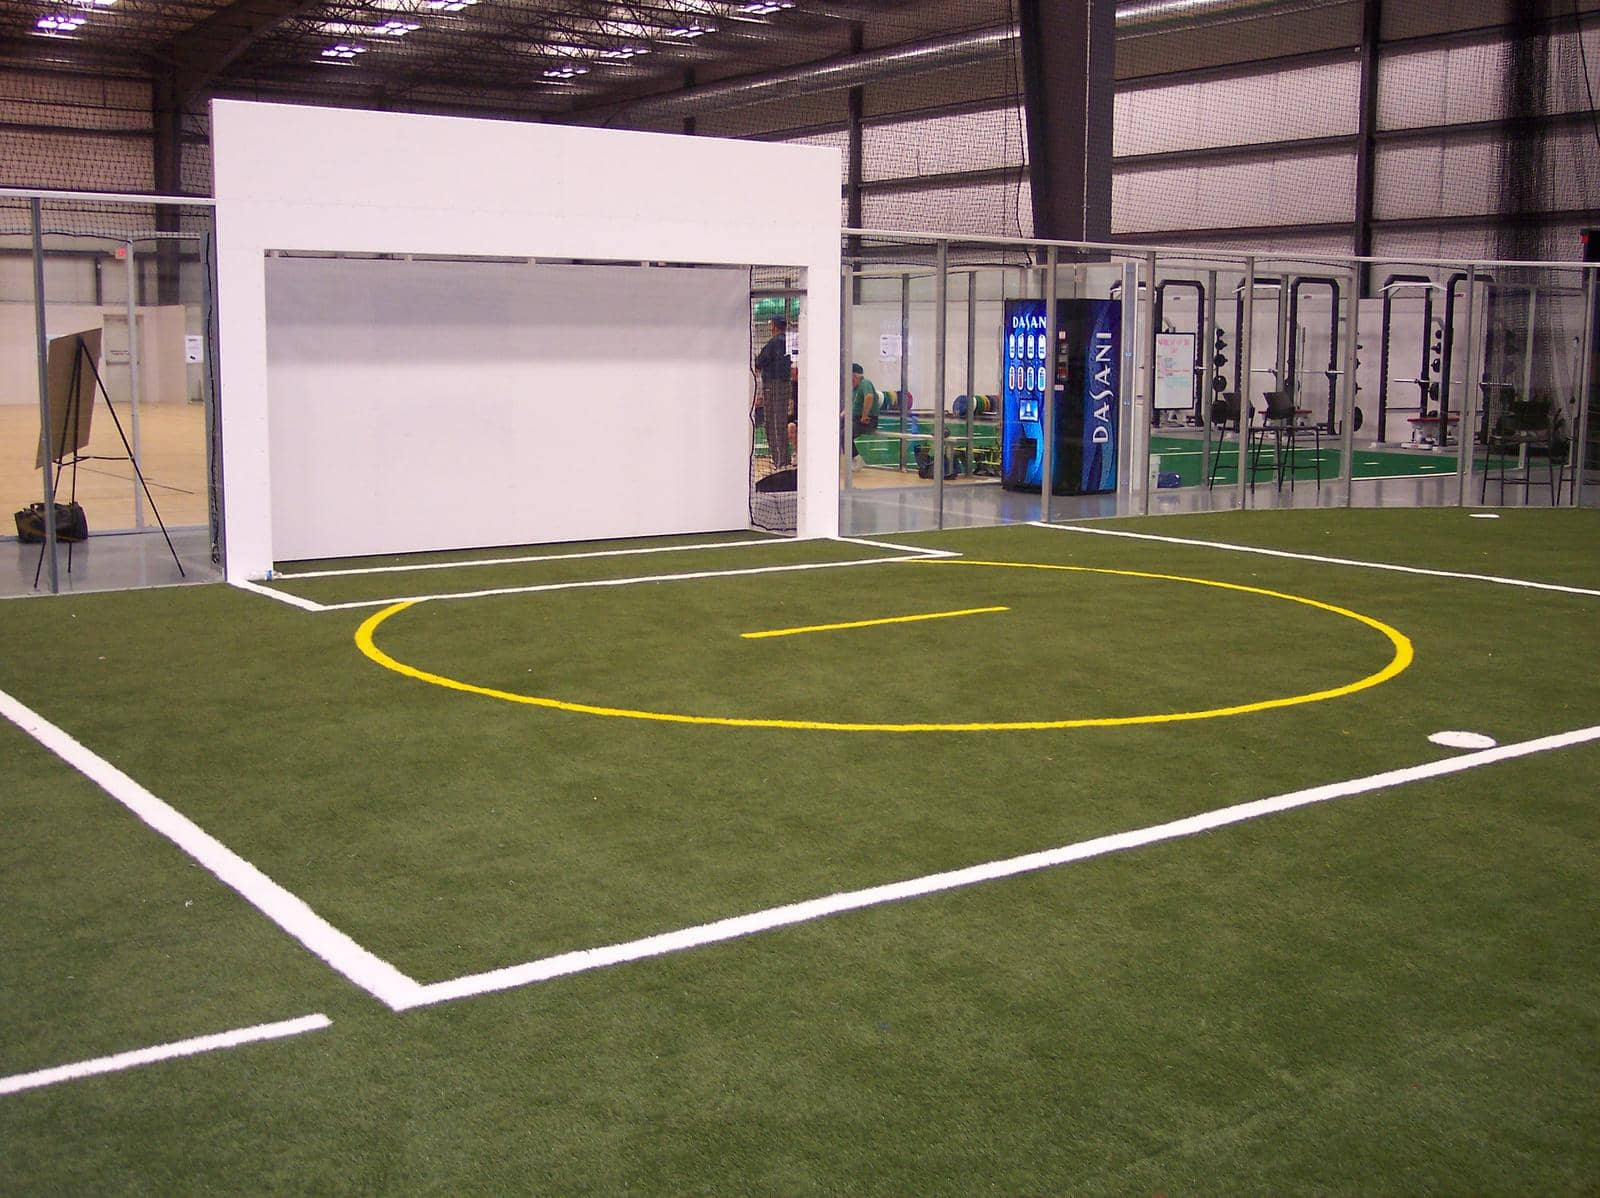 Building an Indoor Sports Facility